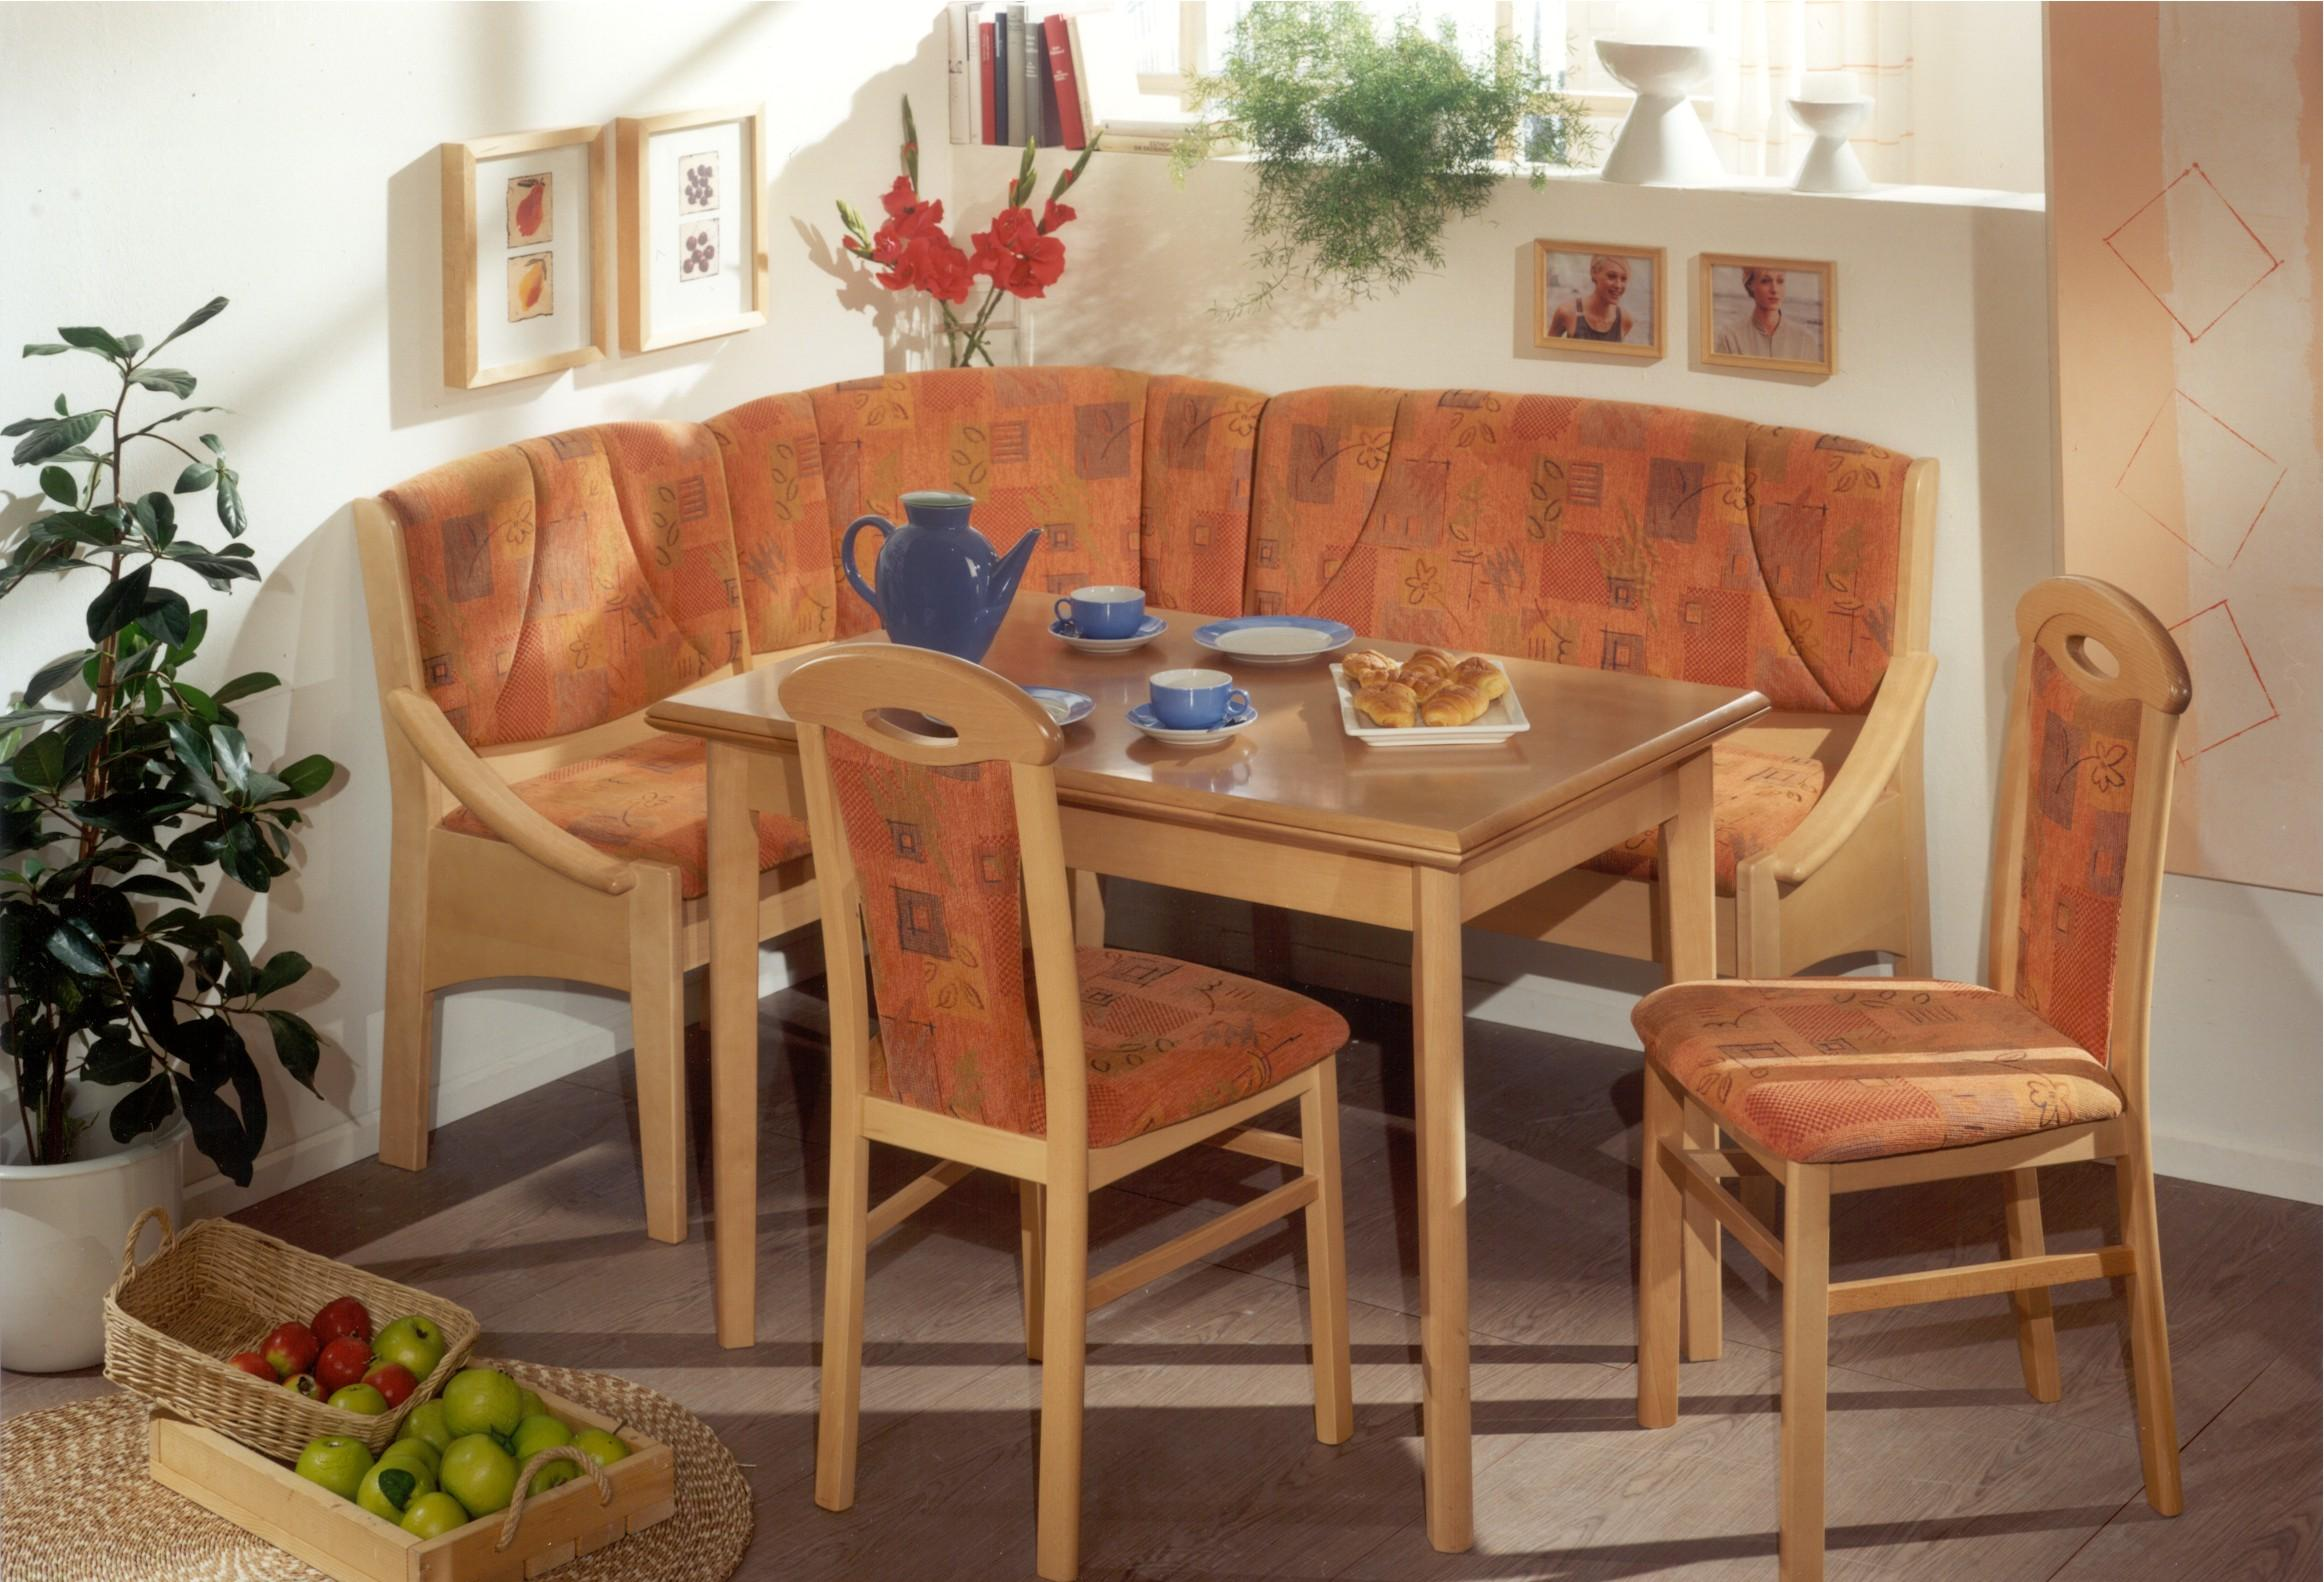 Oak Wood Kitchen Dining Room Nook Sets Chairs And Table Fresh Plants And  Frames